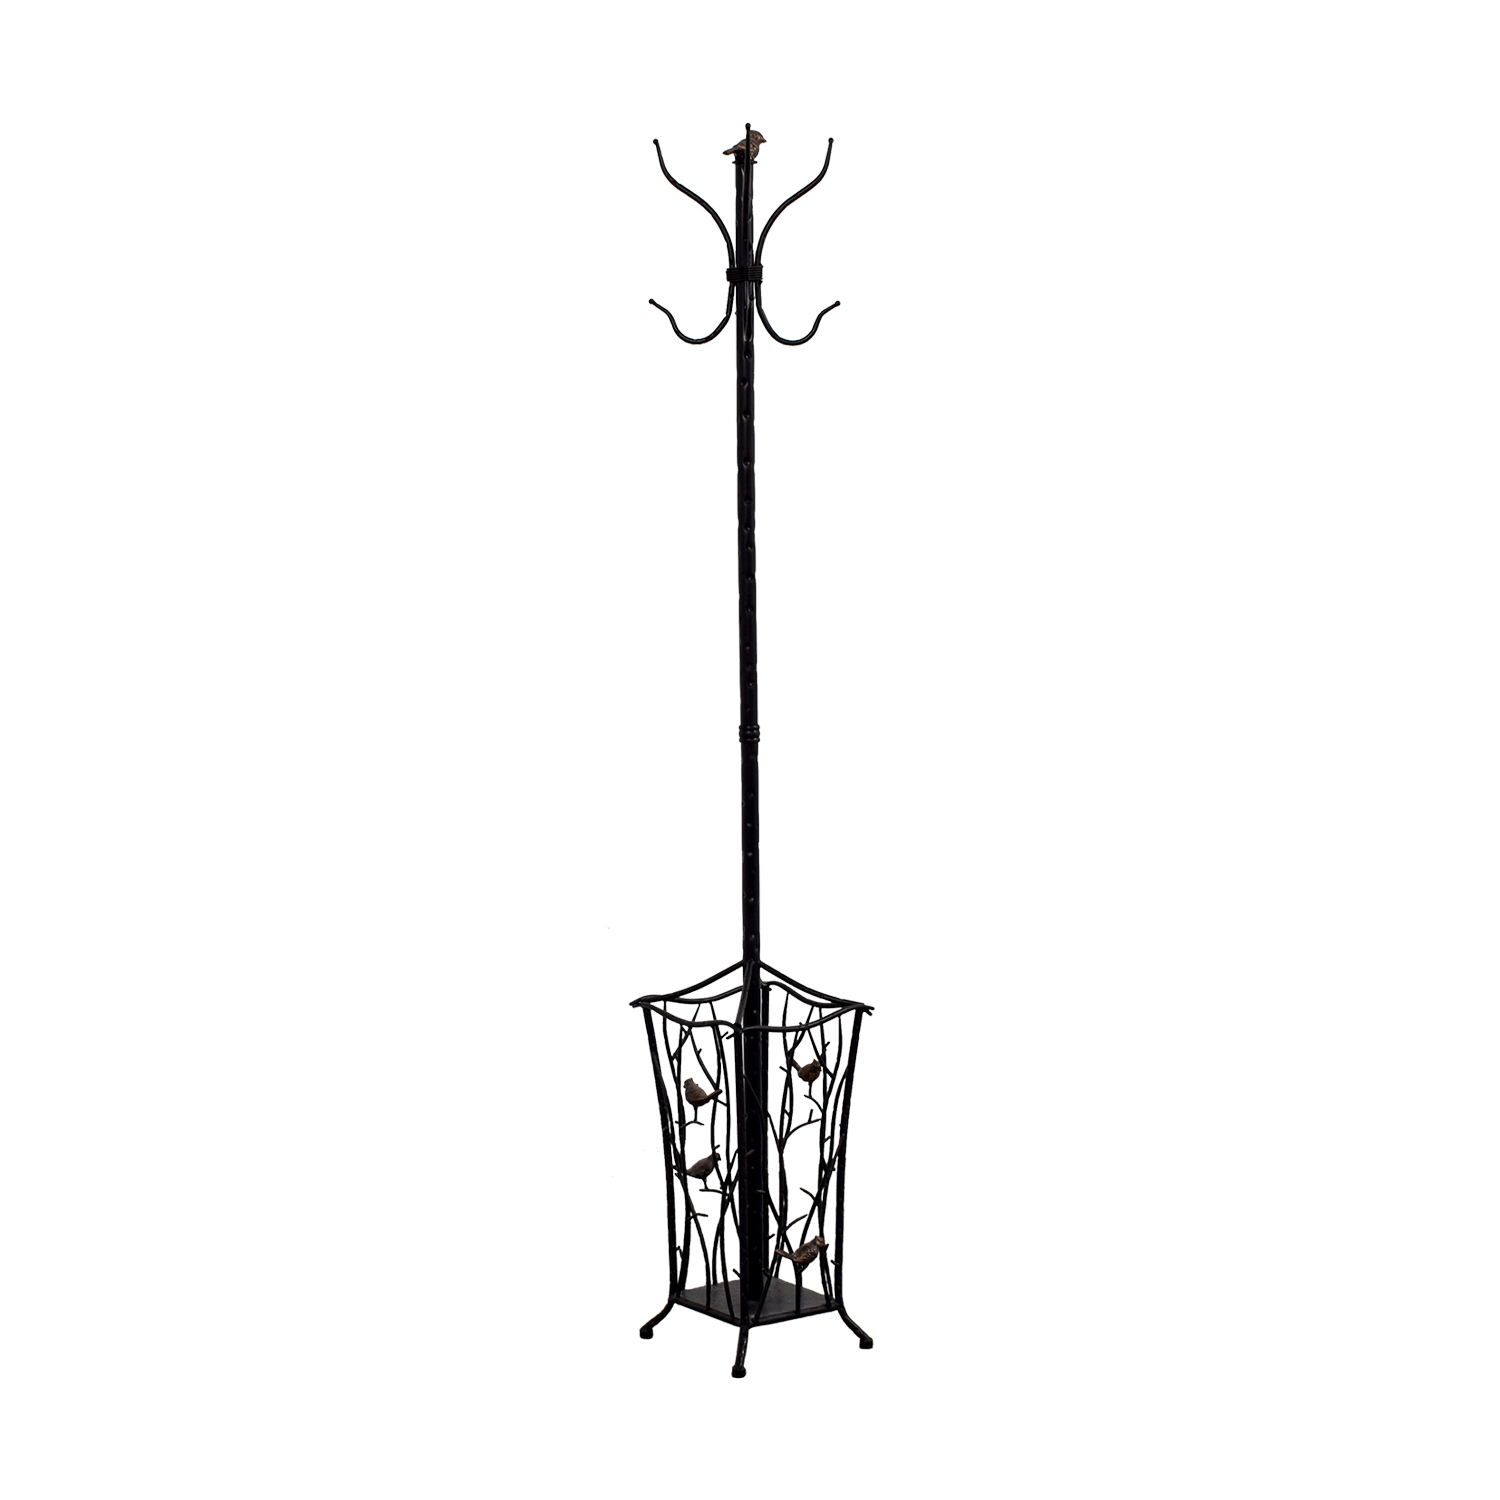 Pier 1 Imports Pier 1 Imports Bird Accent Coat Rack coupon